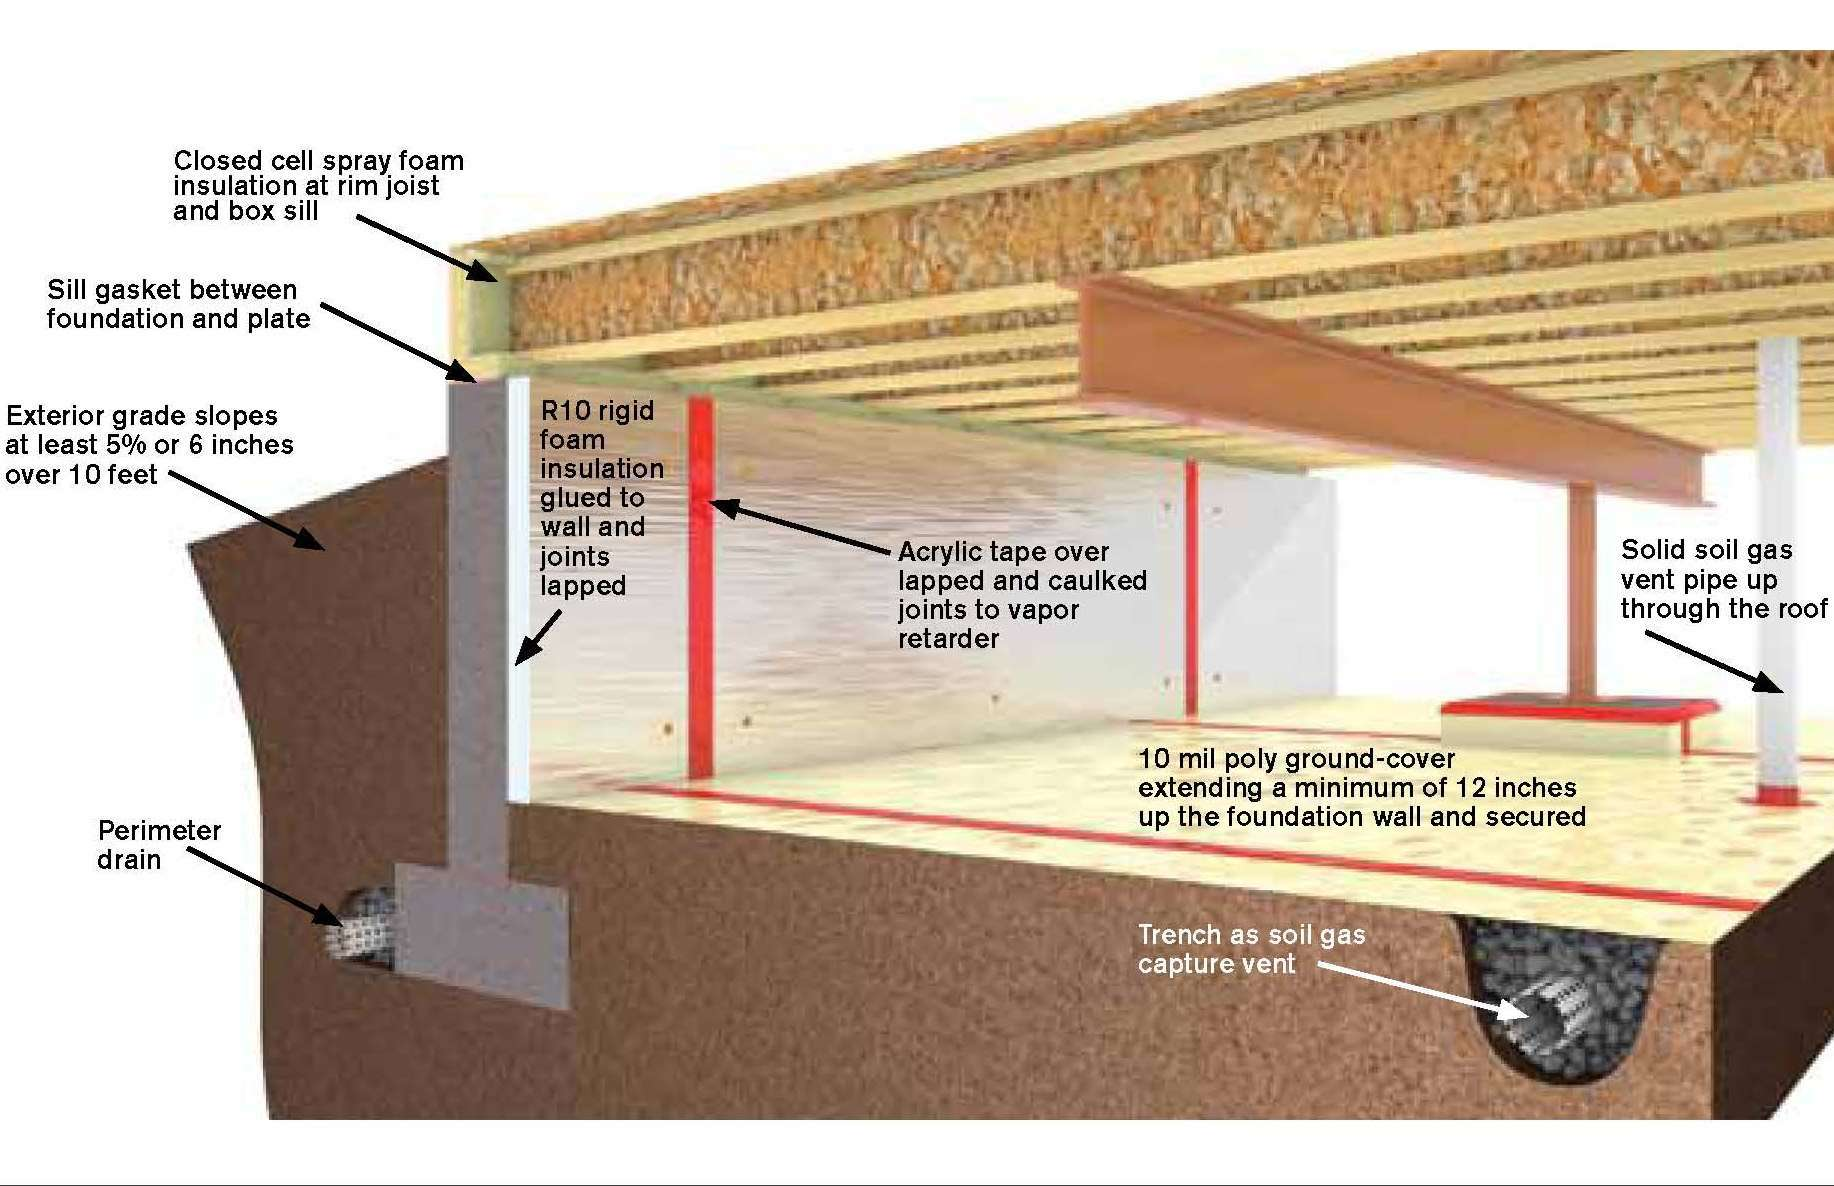 conditioning crawlspaces pro construction guide. Black Bedroom Furniture Sets. Home Design Ideas